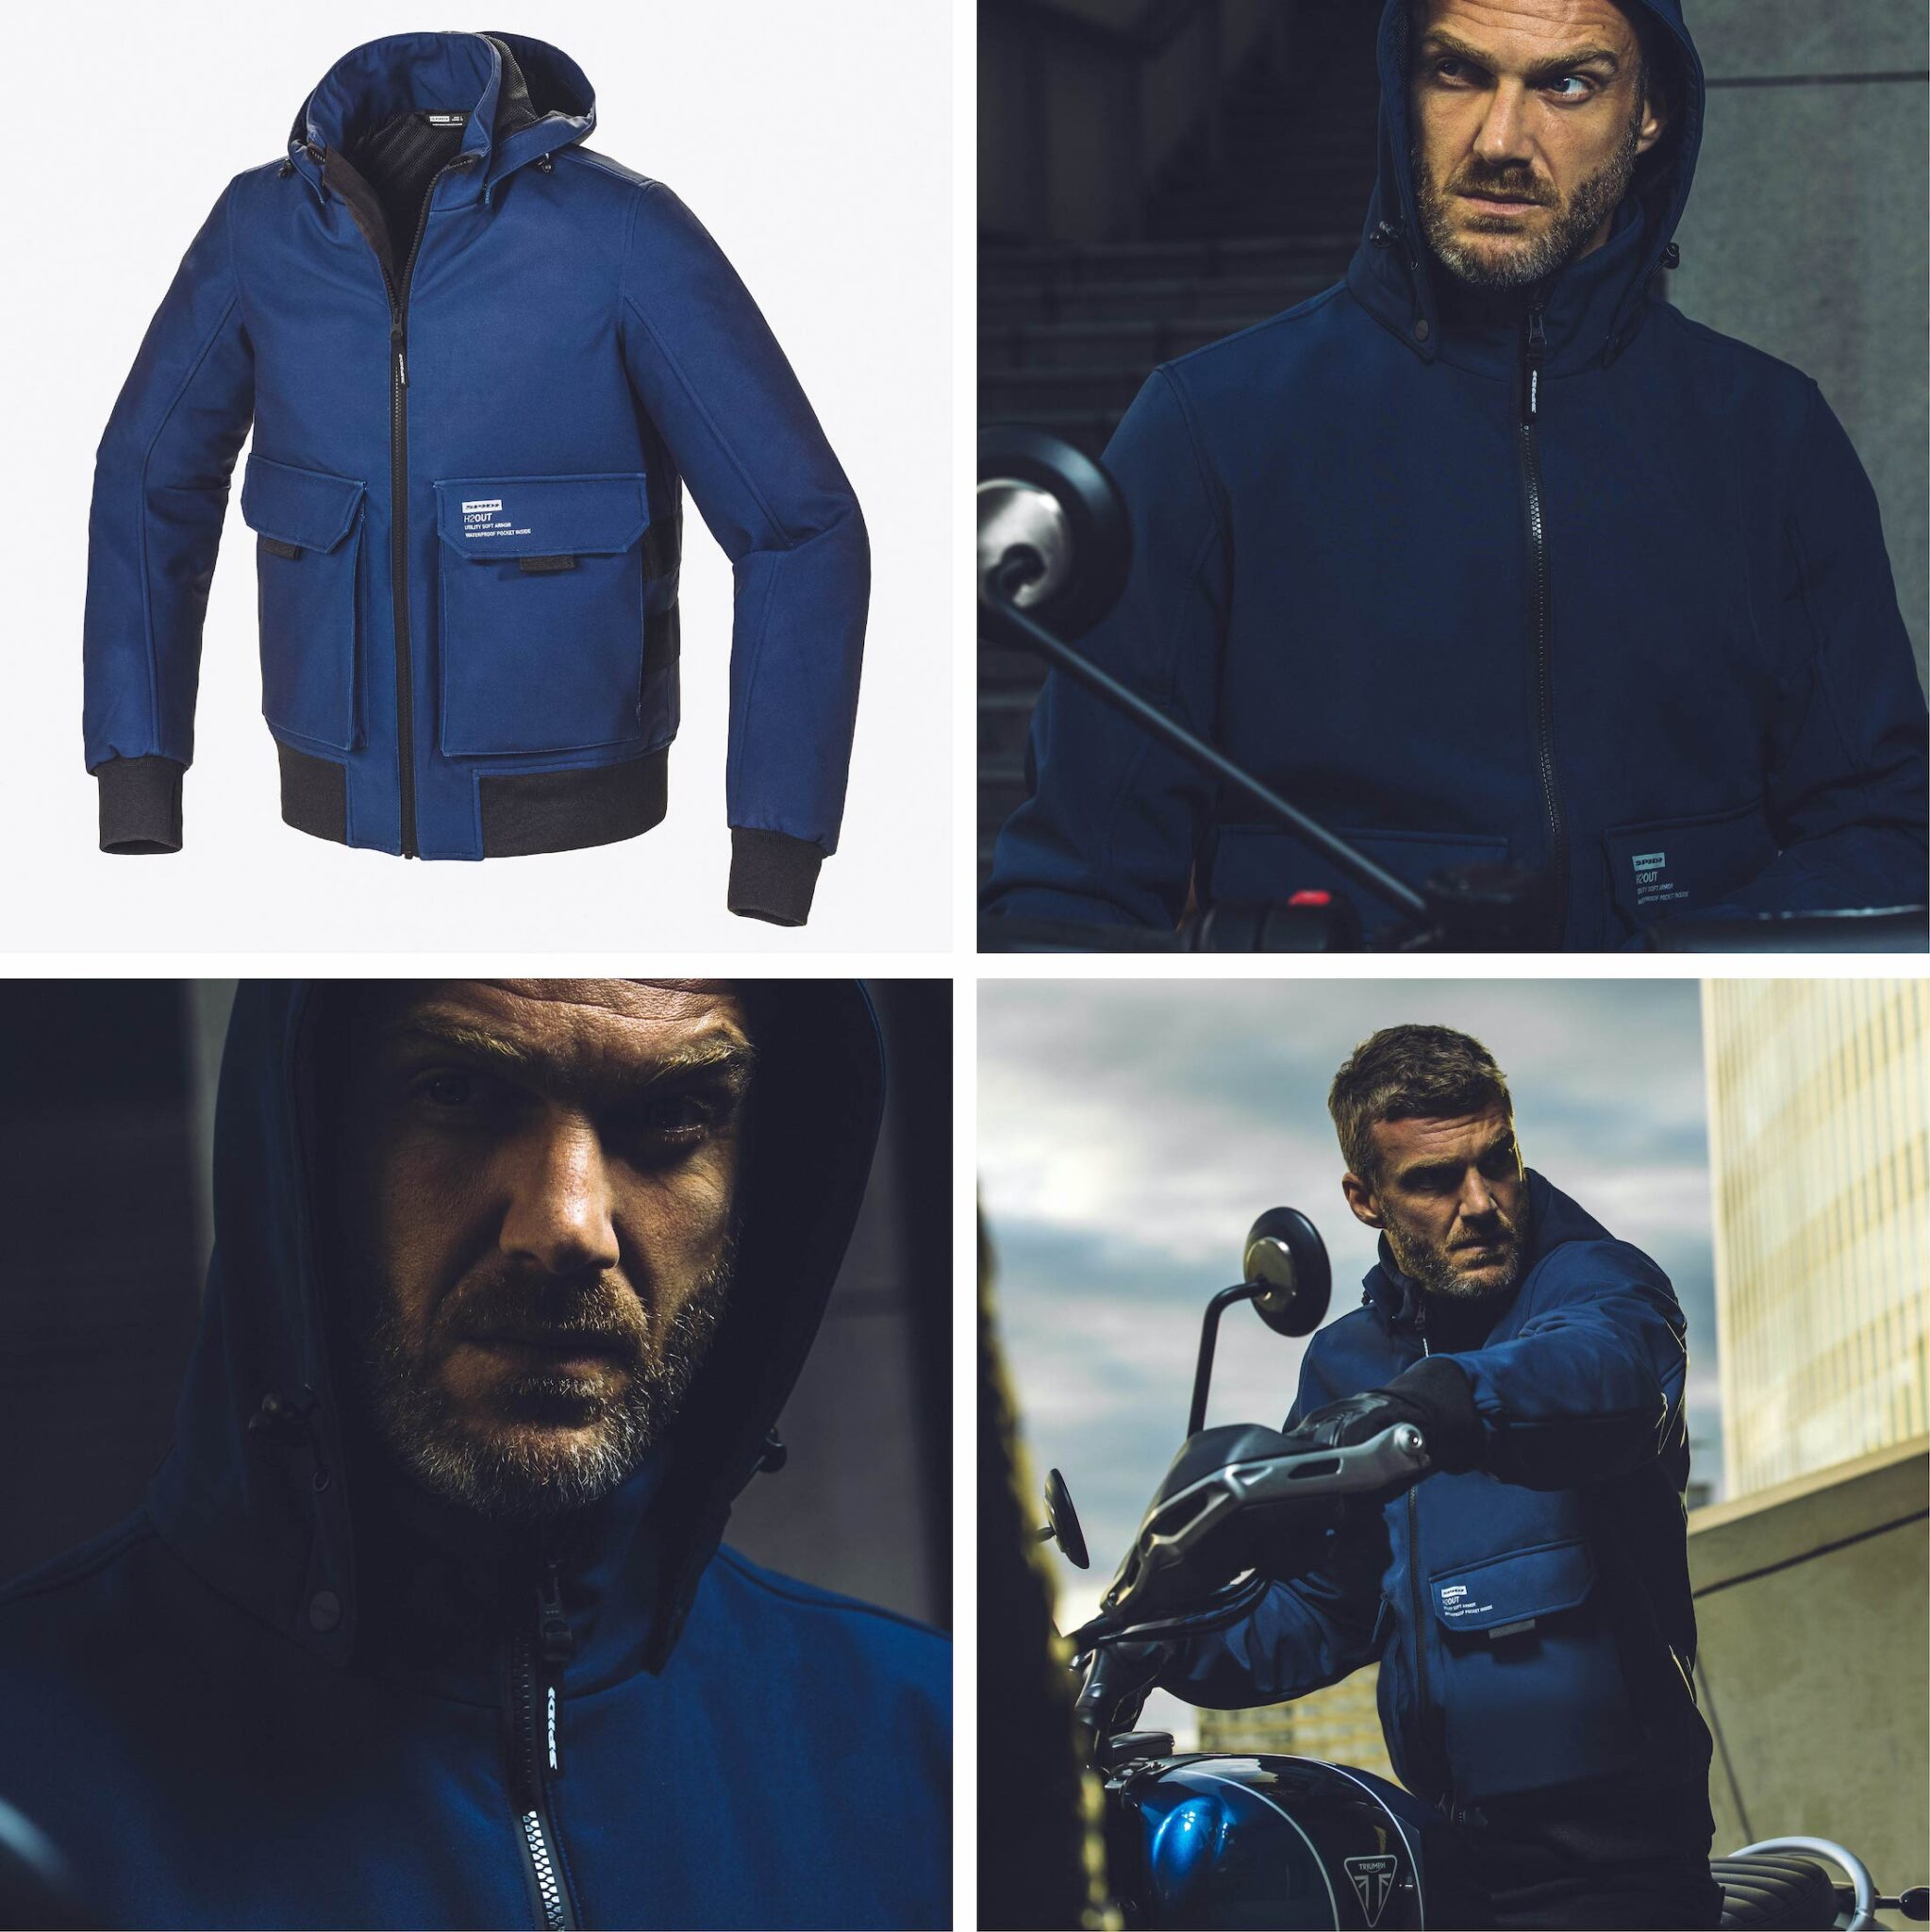 Spidi Metromover – A Waterproof Motorcycle Jacket Designed For Inclement Weather